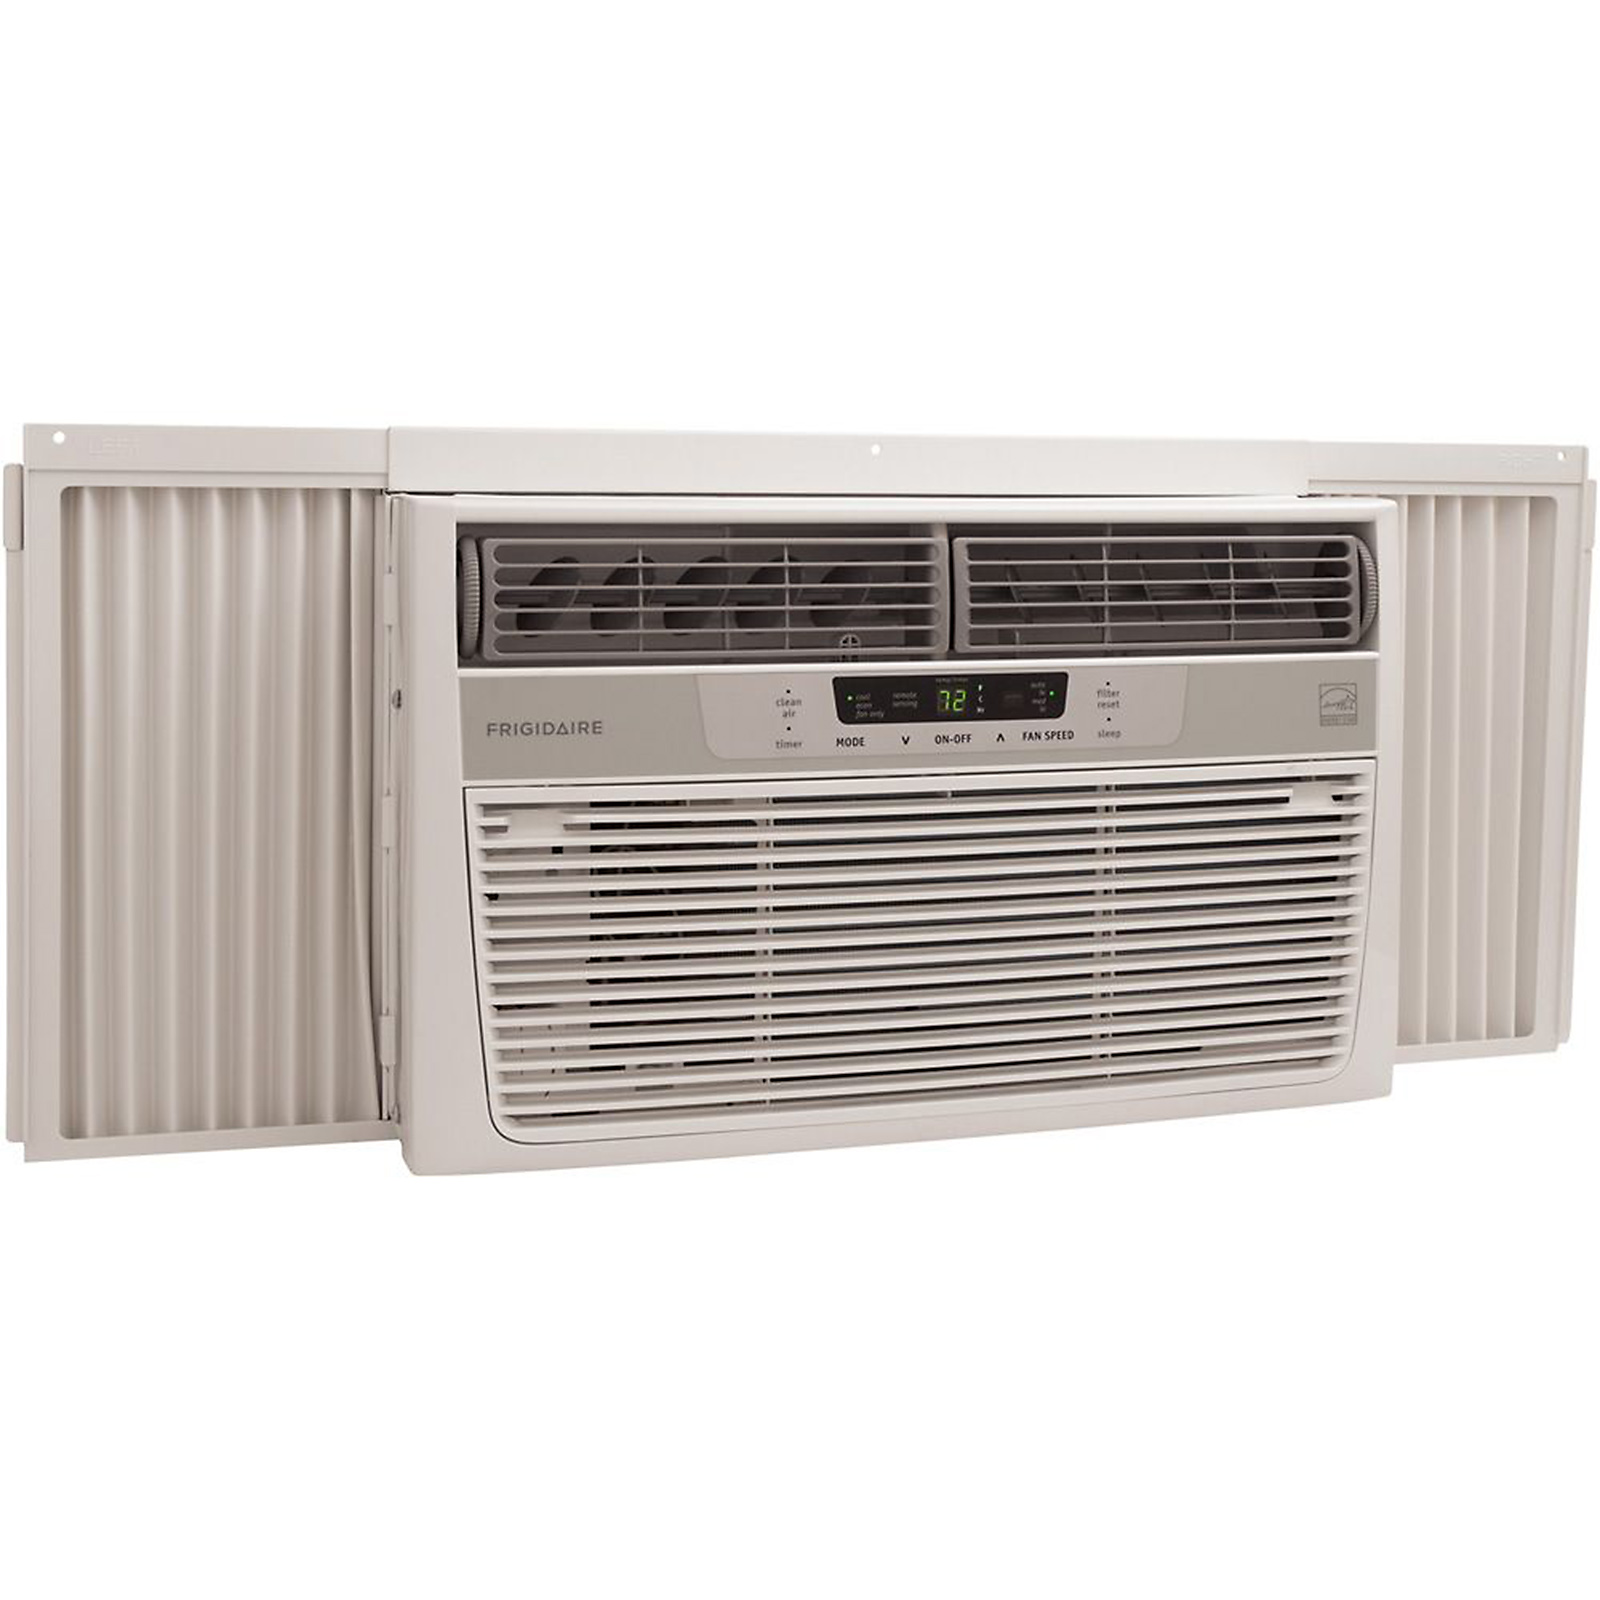 Frigidaire Frigidaire FRA086AT7 8,000 BTU Compact Window Air Conditioner